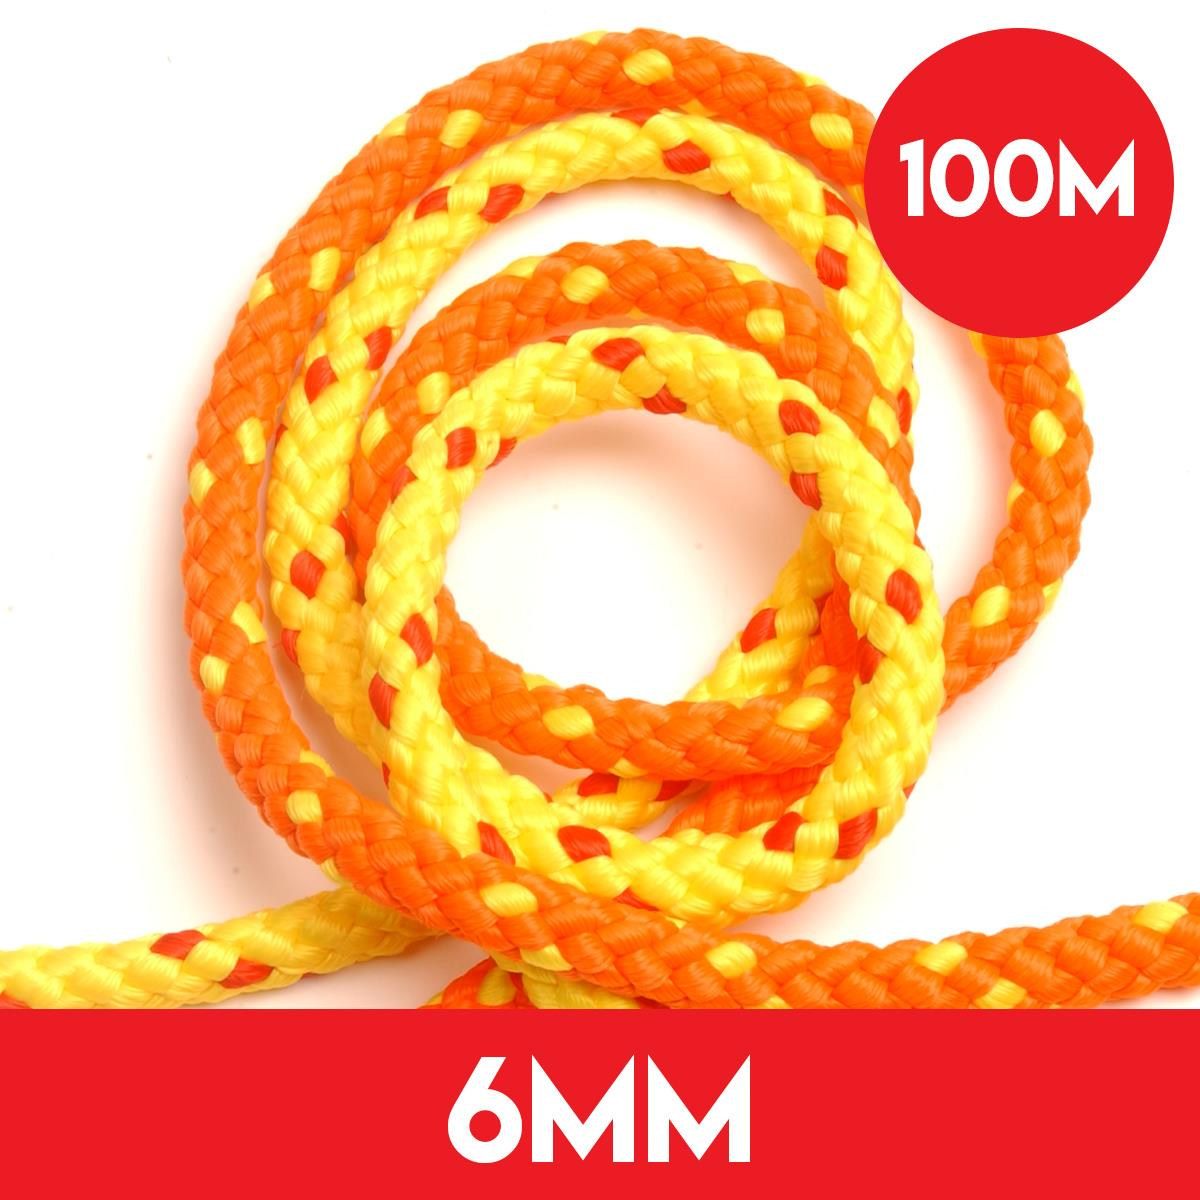 100m of 6mm Floatline Tow Rope